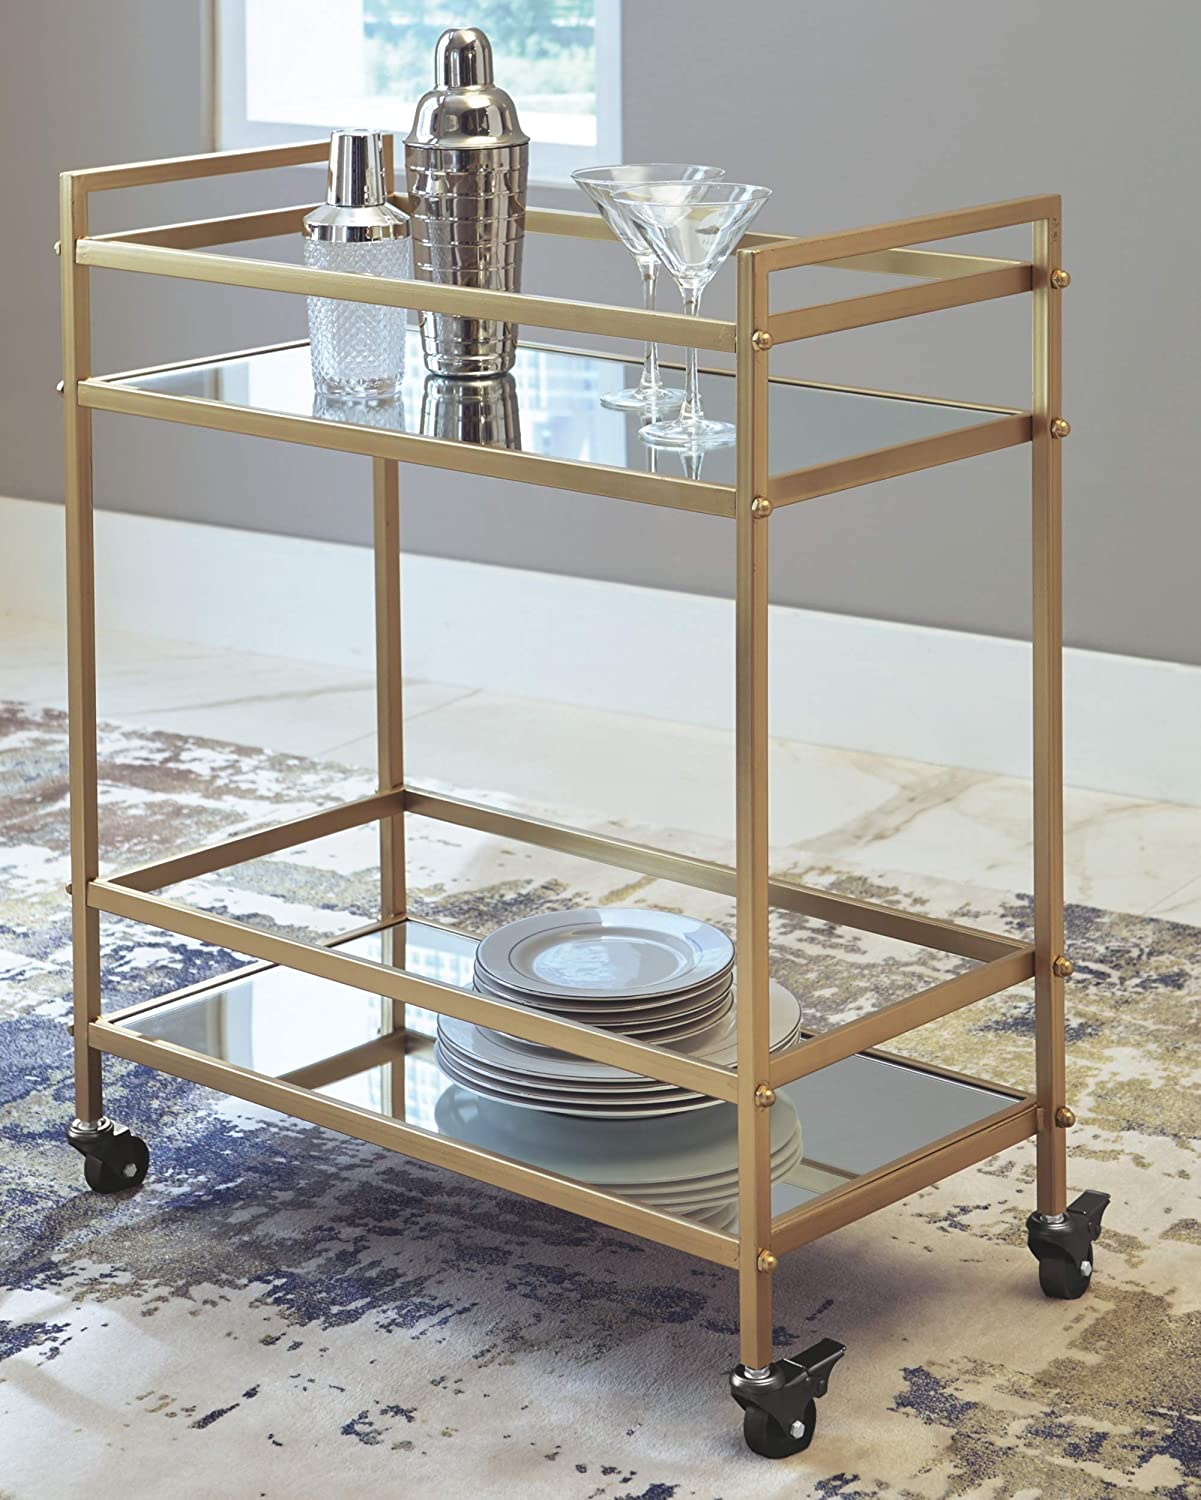 Kailman Midcentury Antique Gold Bar Cart with Mirrored Shelves